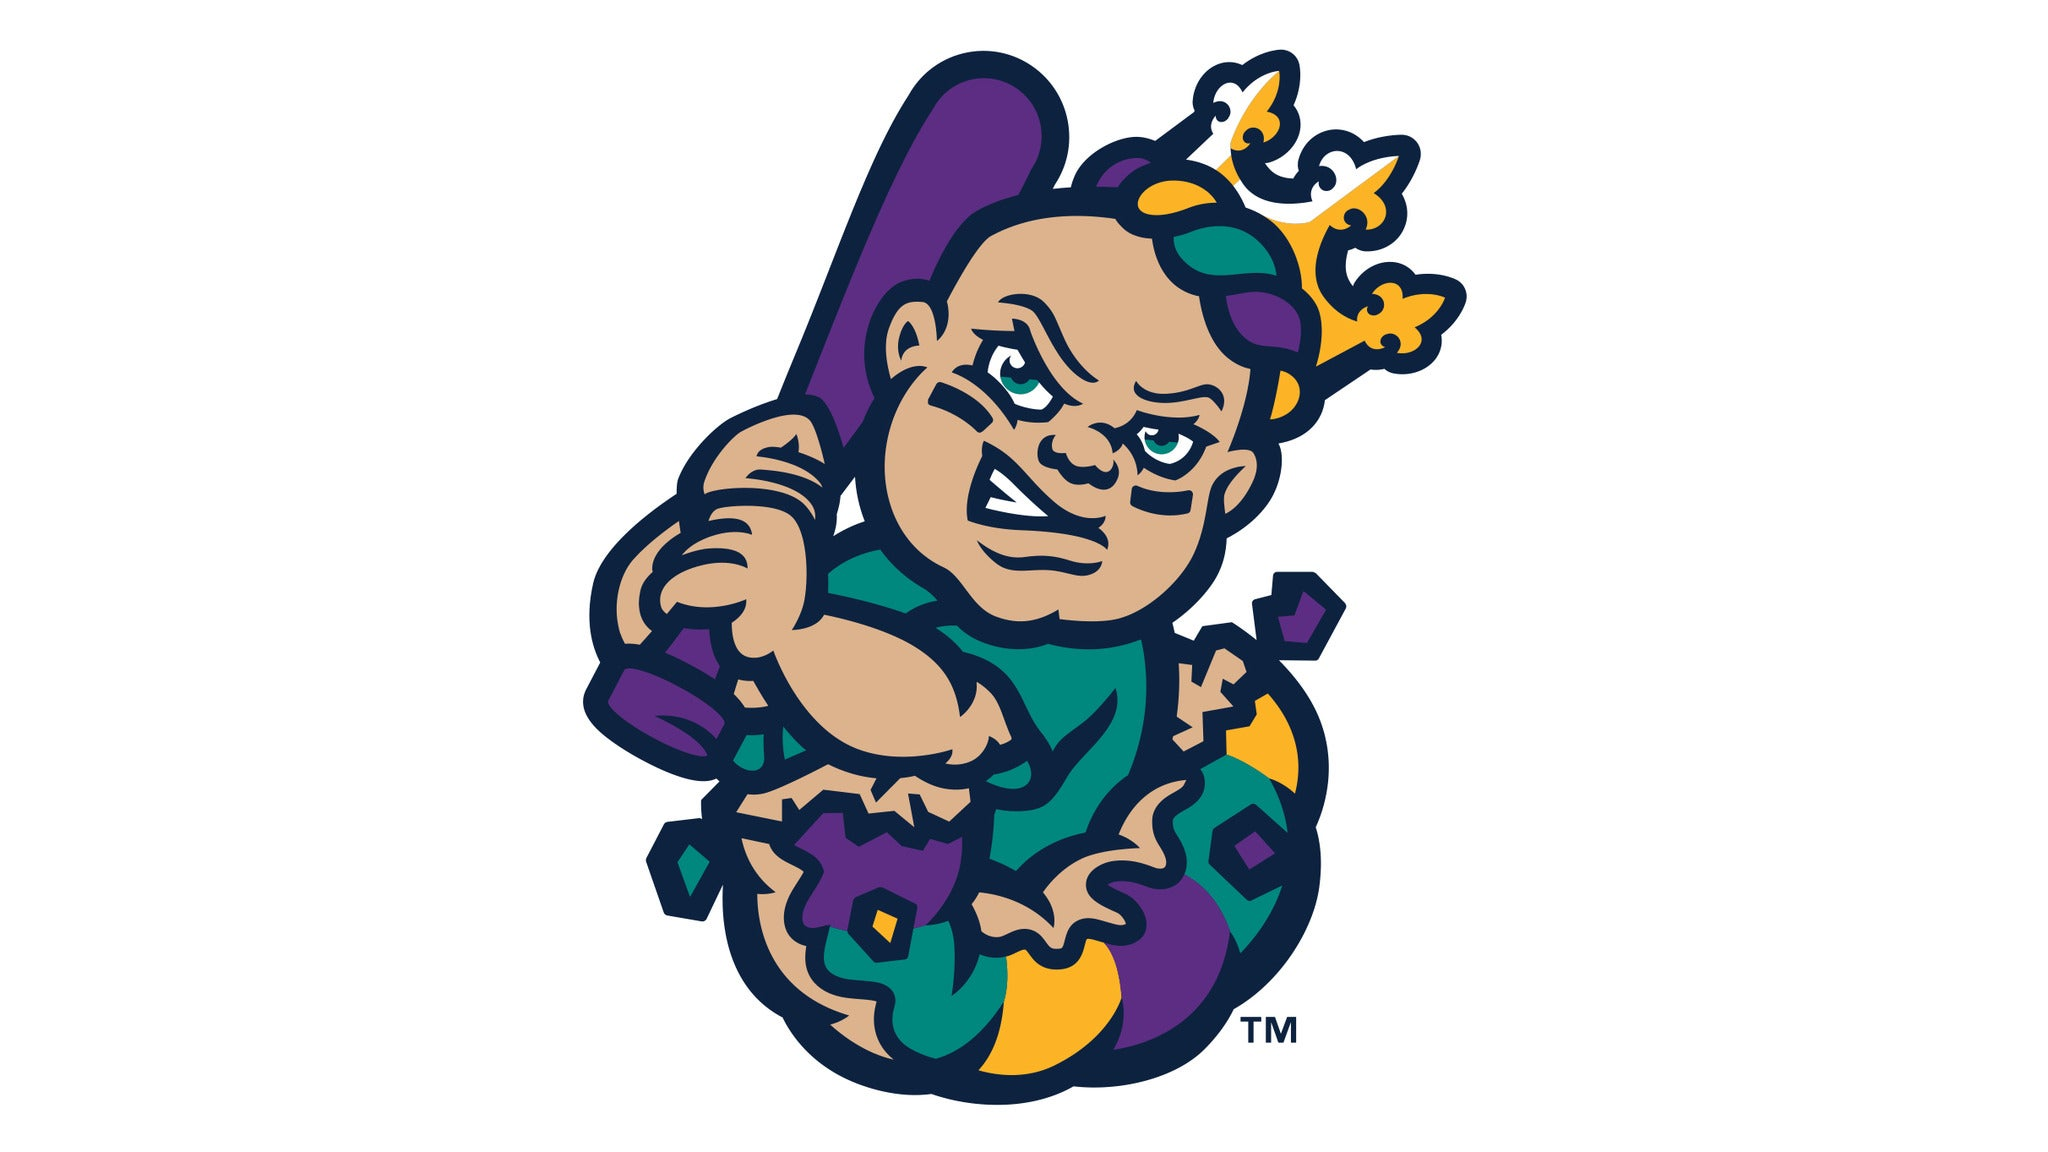 New Orleans Baby Cakes vs. Nashville Sounds